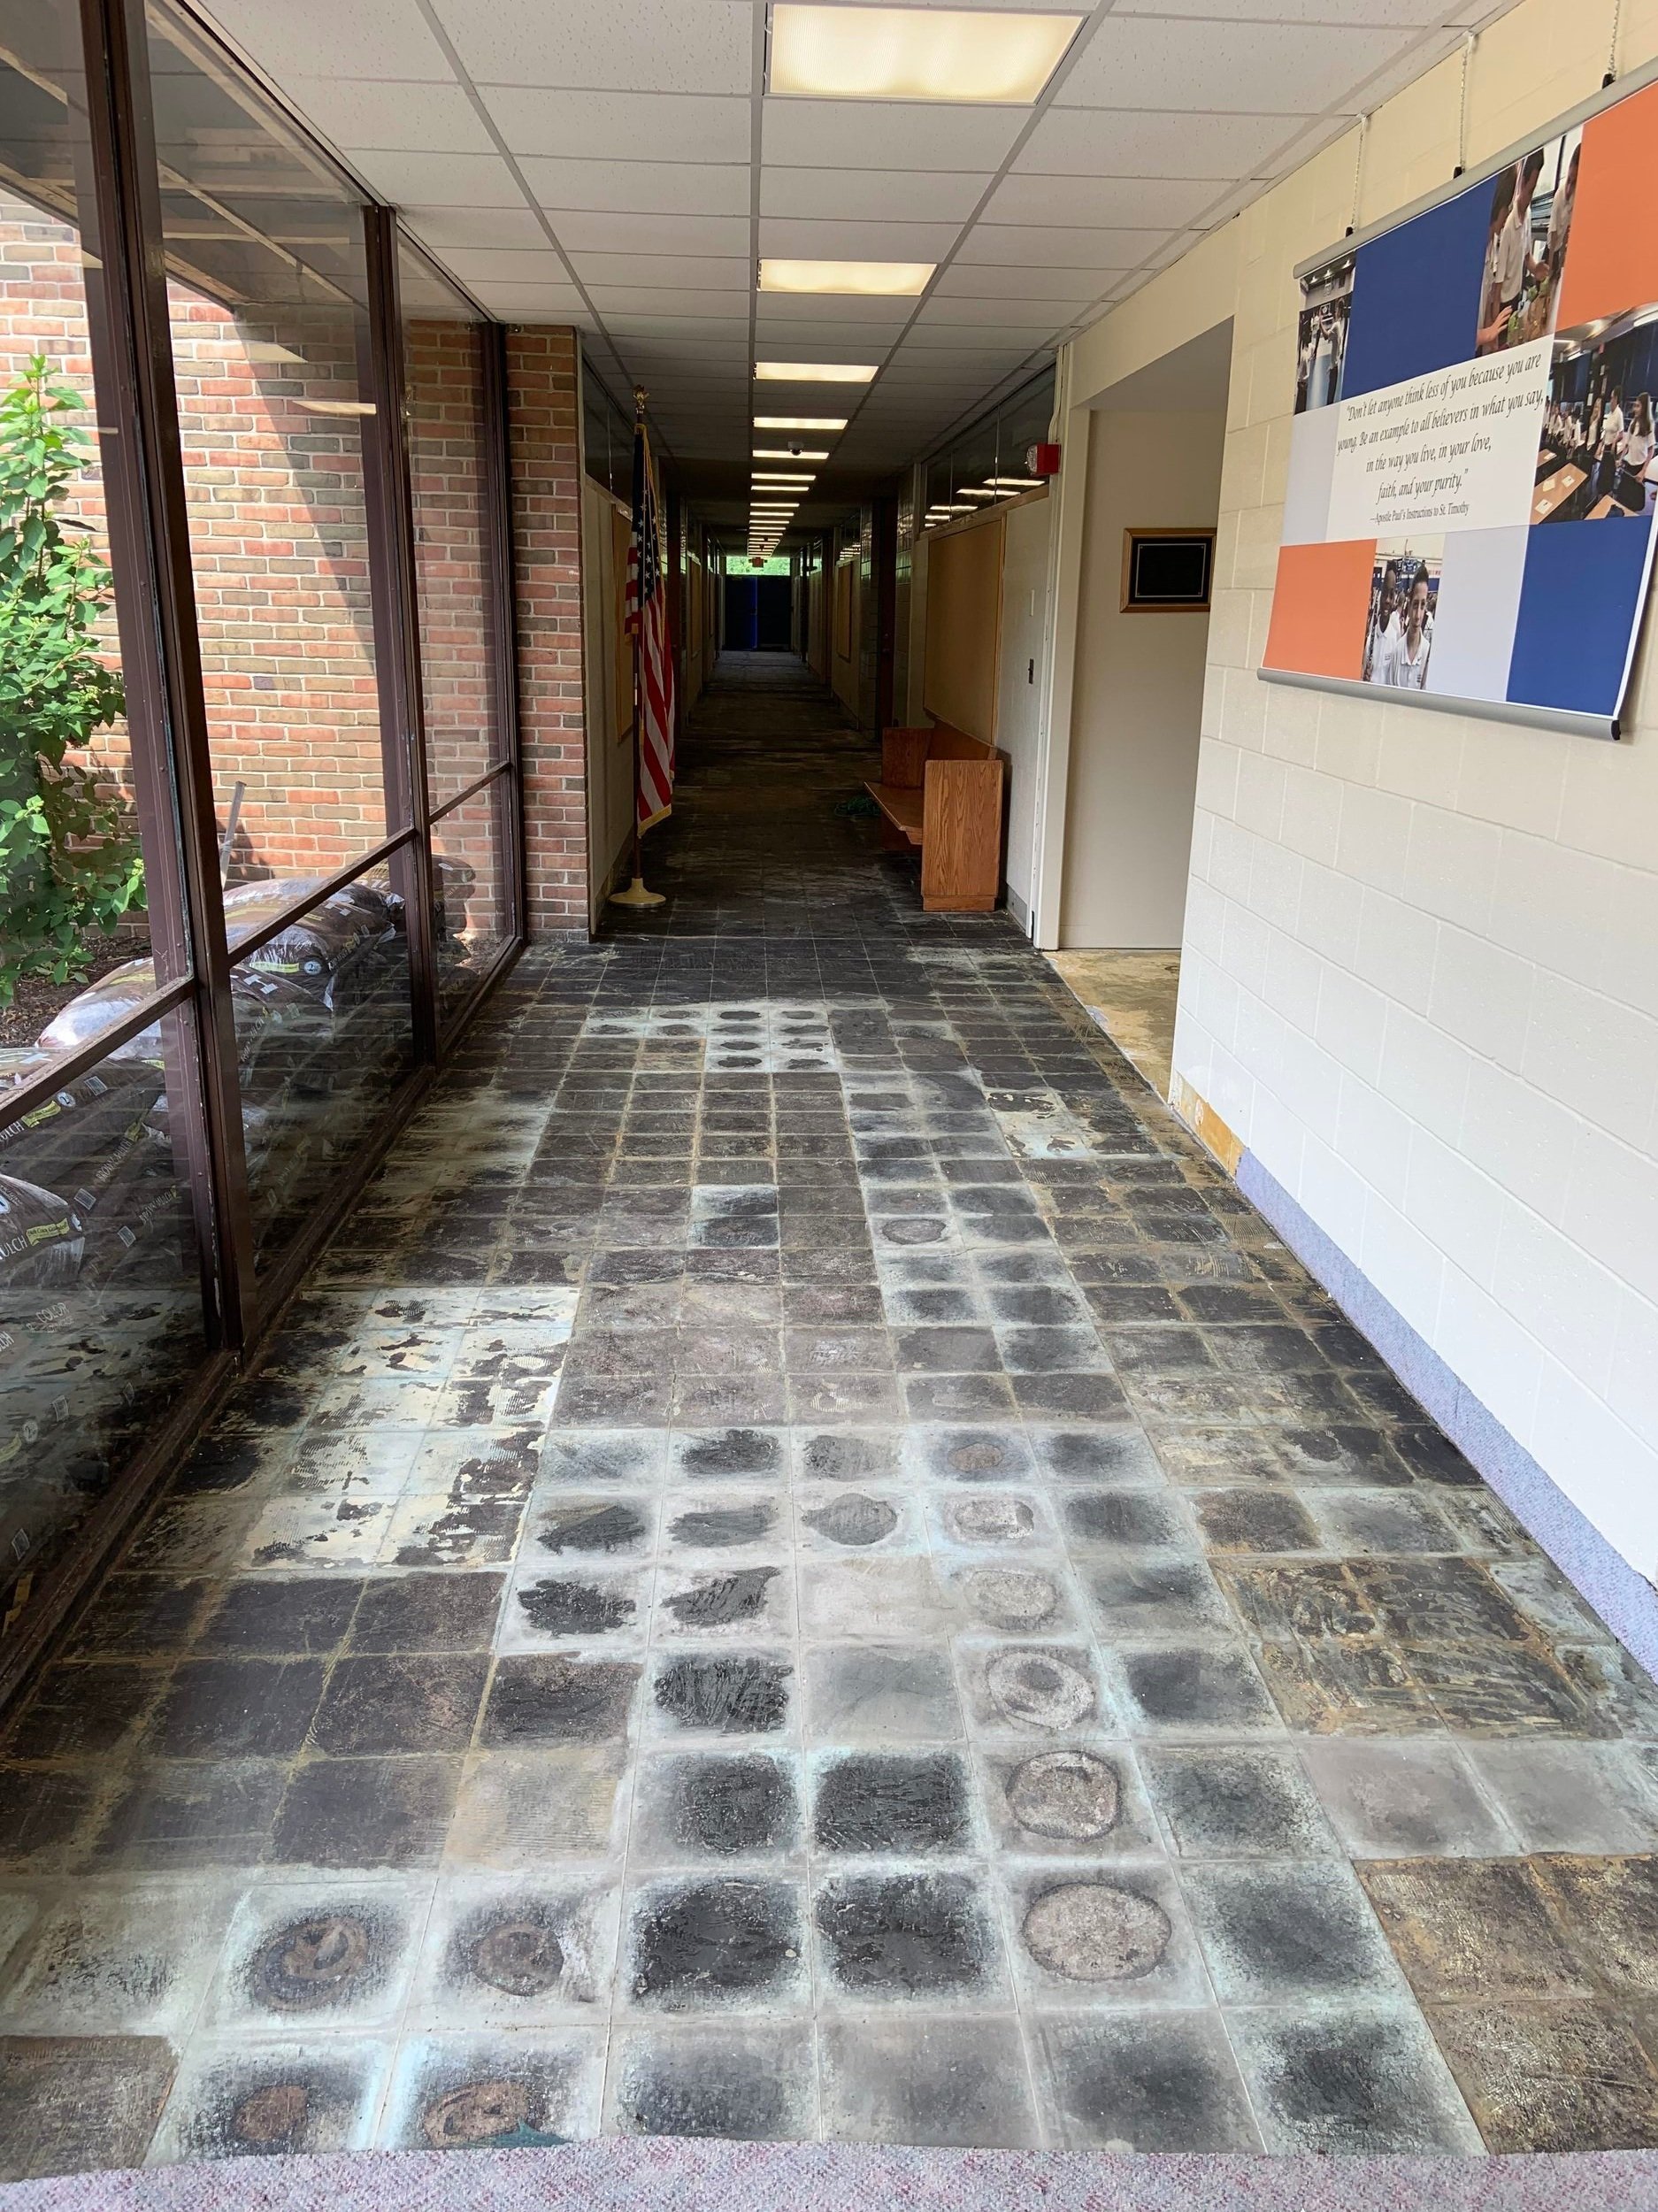 Beginning stages of the installation of new carpets throughout the school!